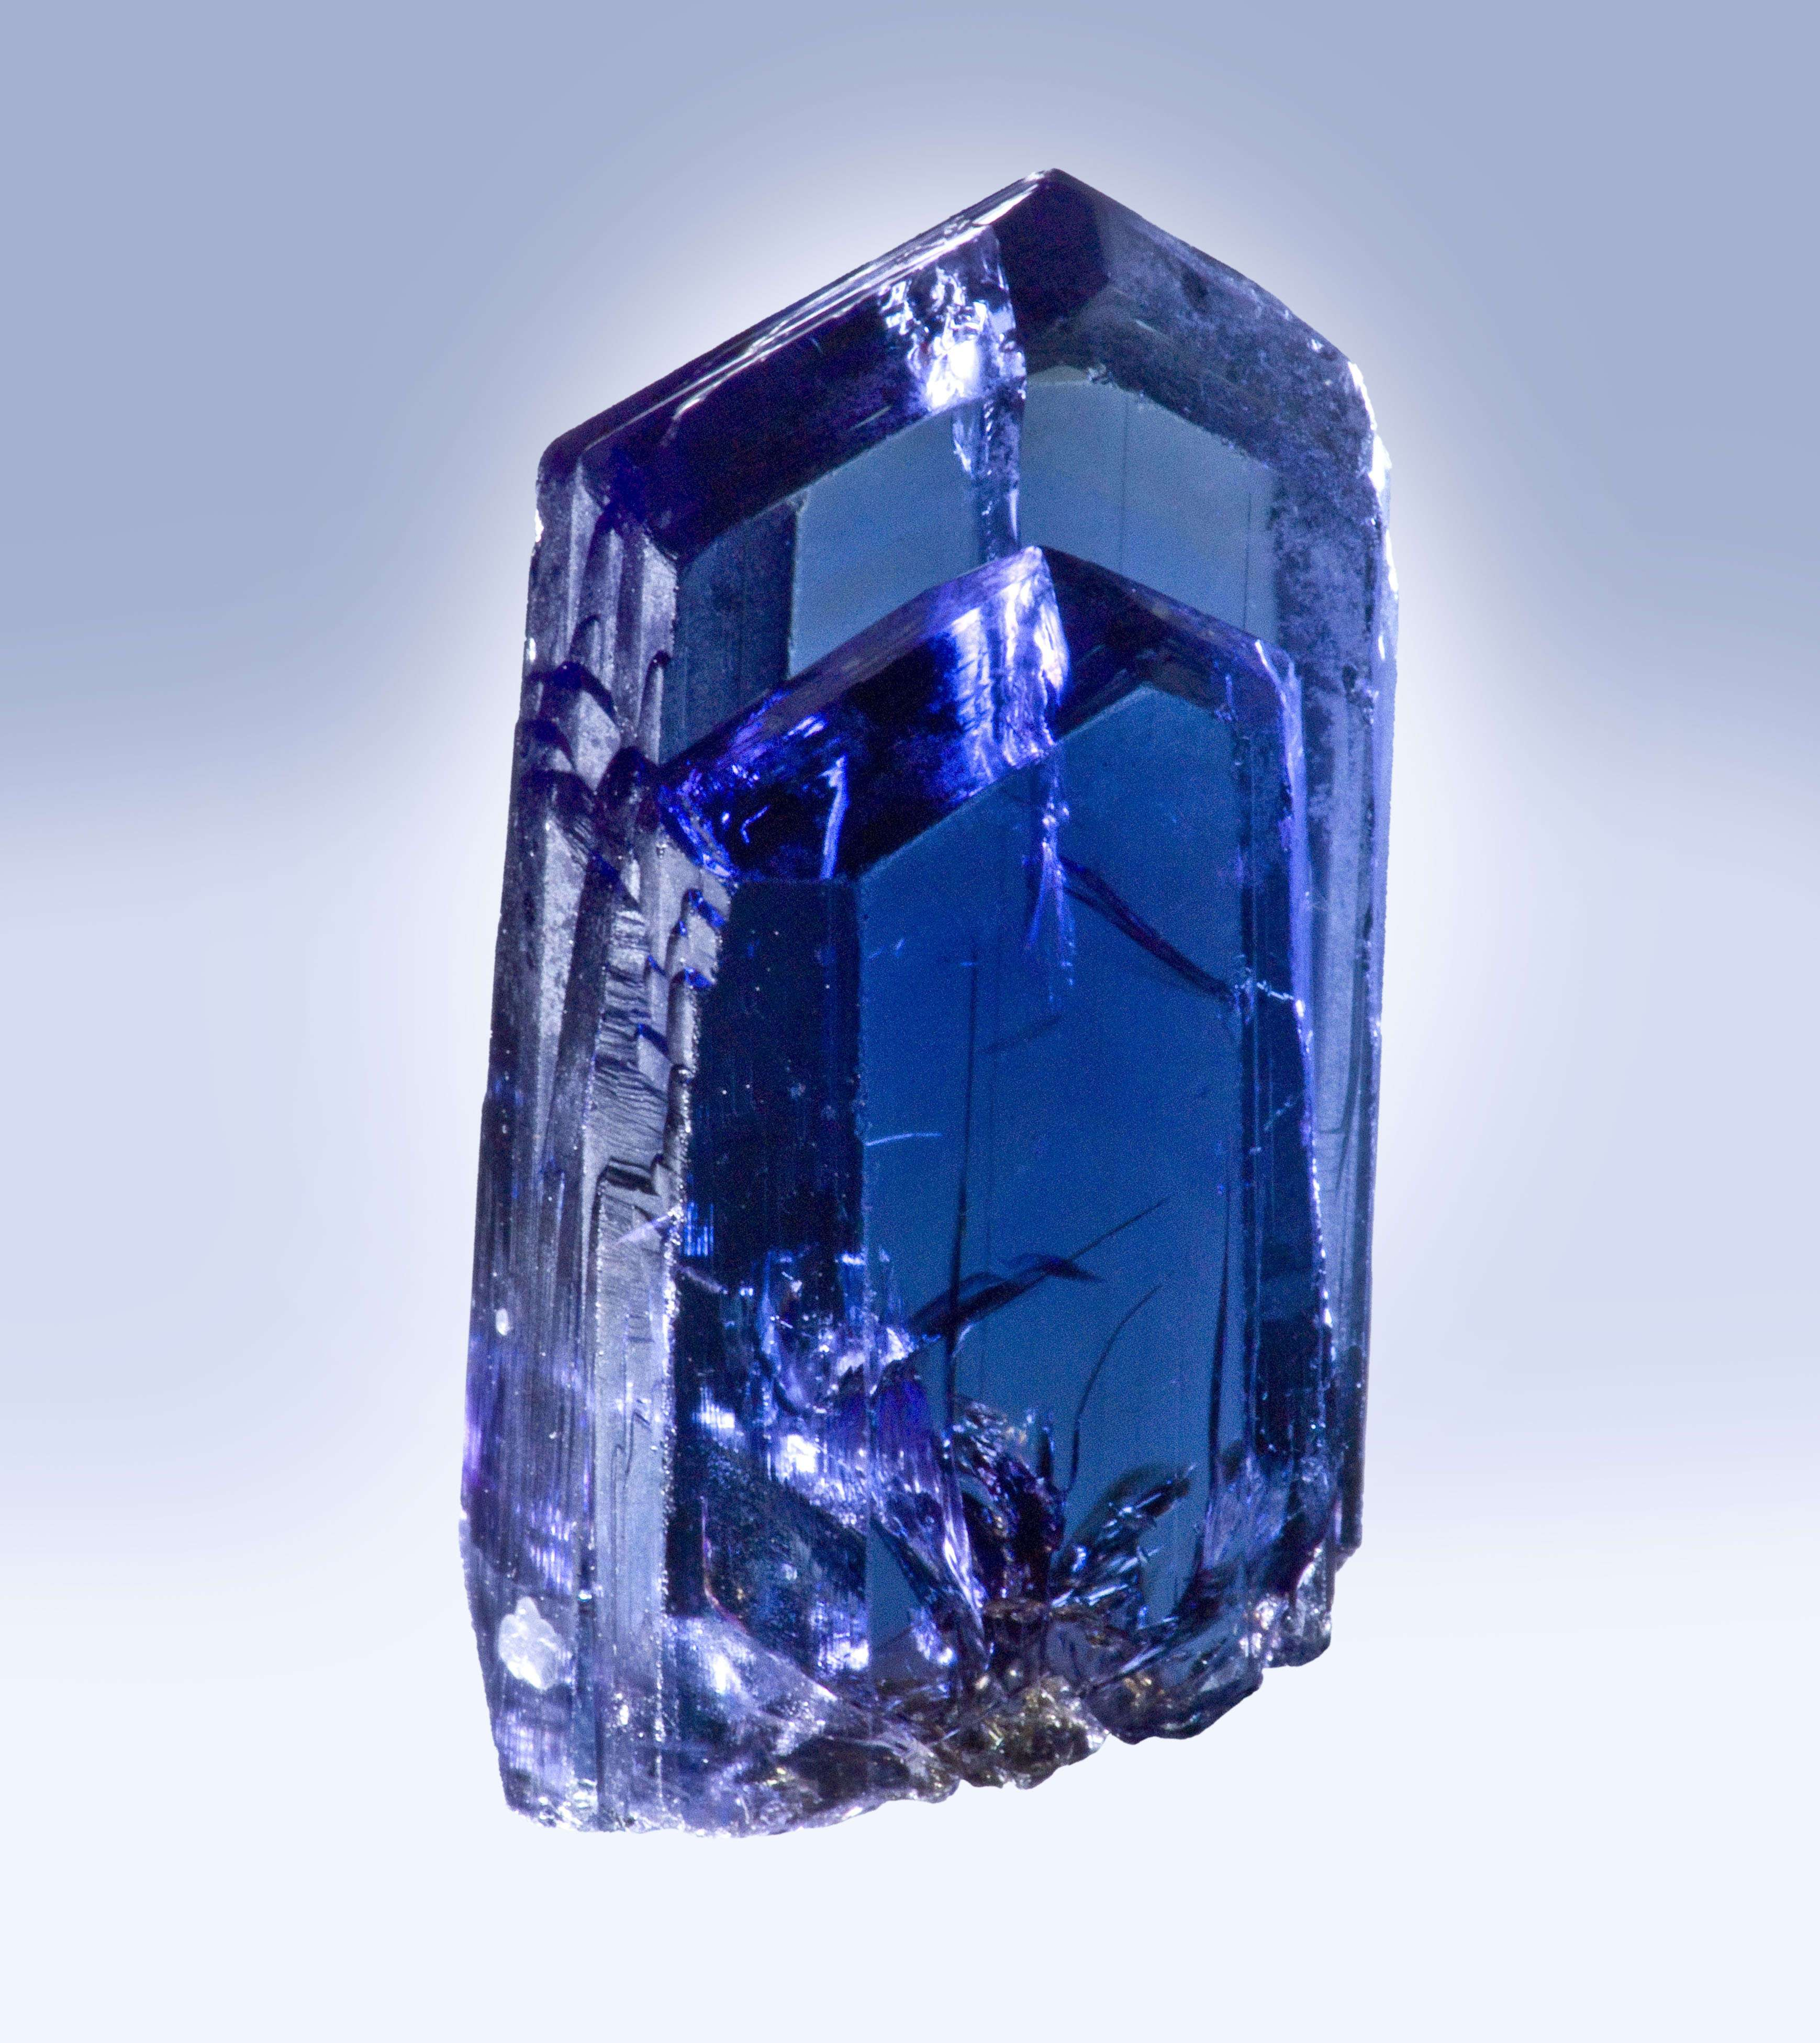 A stunning totally gemmy crystal weighing 36 5cts pure gem rough